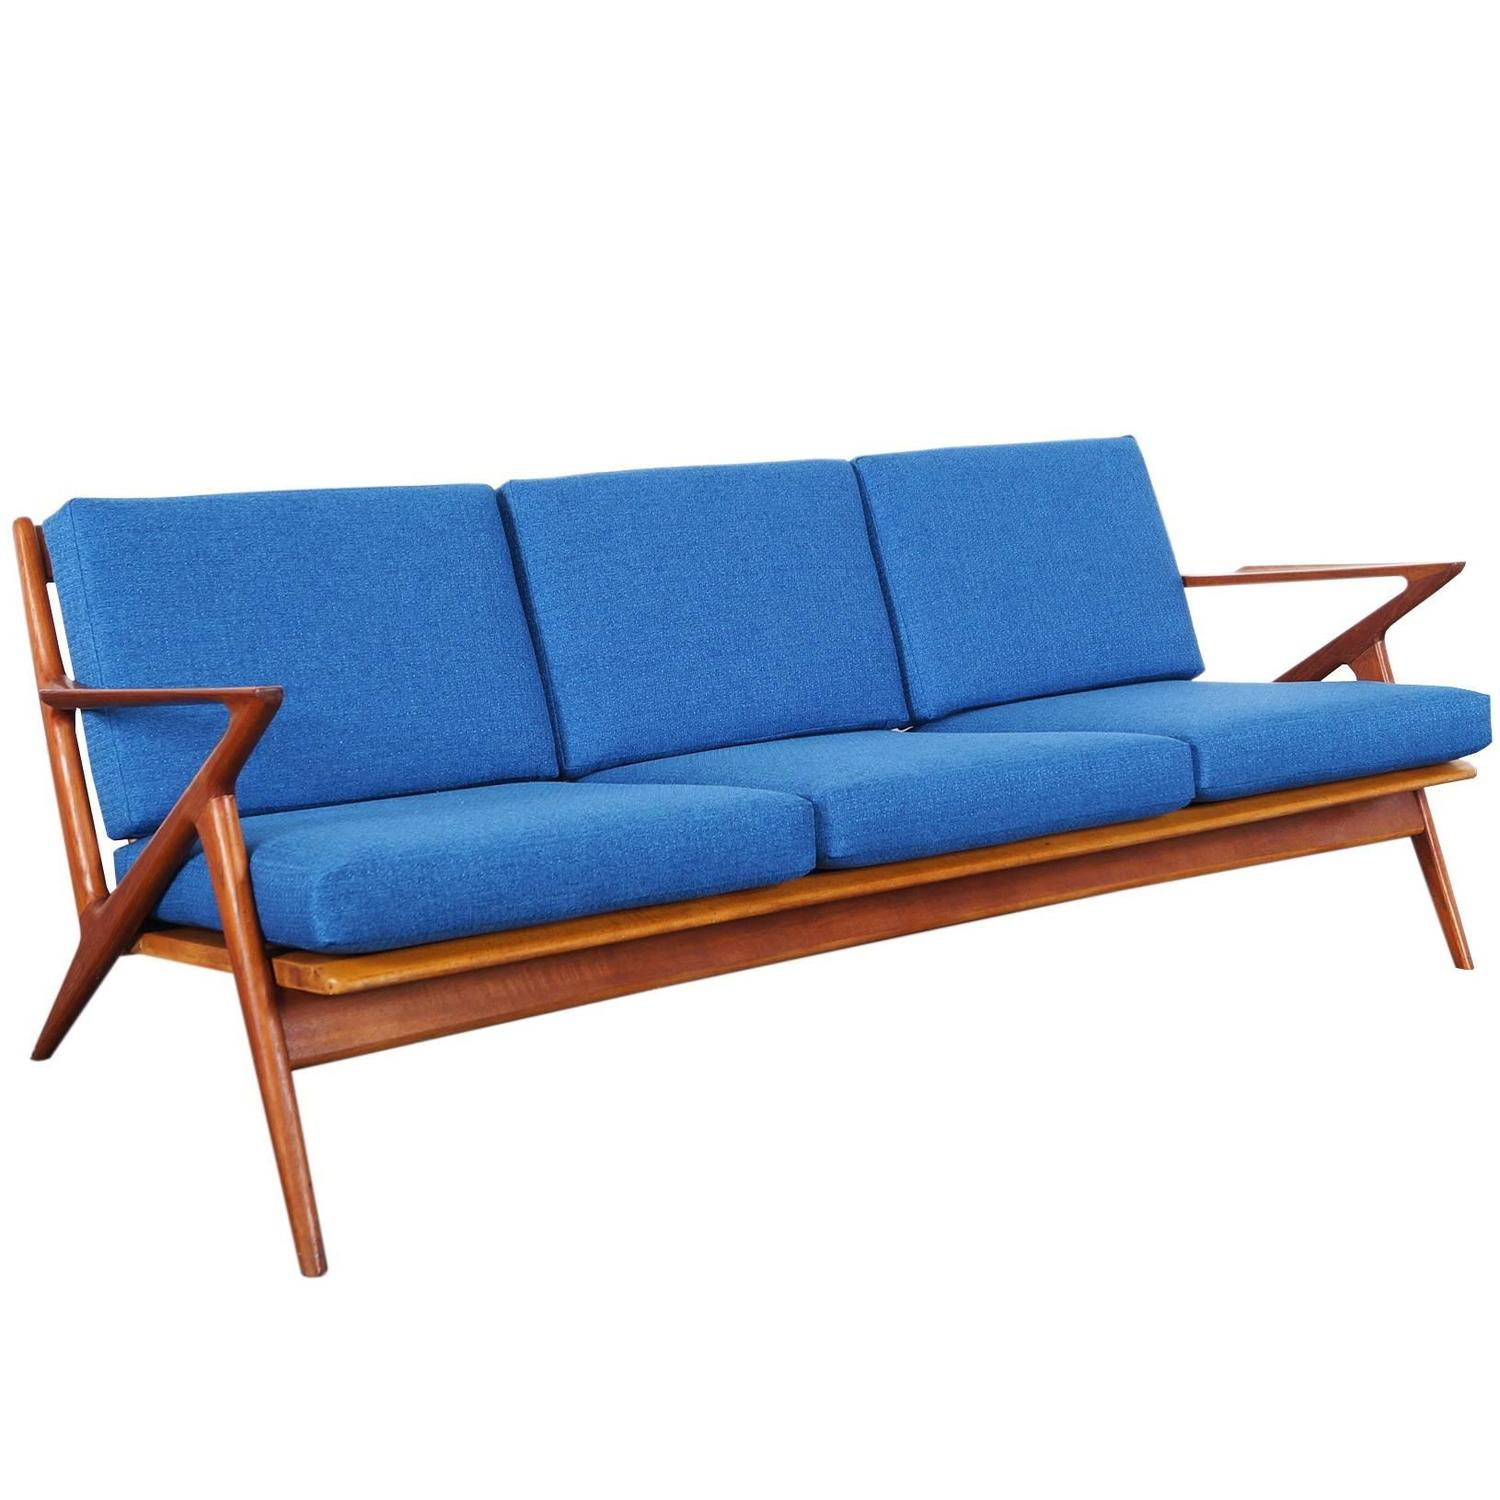 Danish modern sofa good danish modern sofa 17 with for Modern loveseat